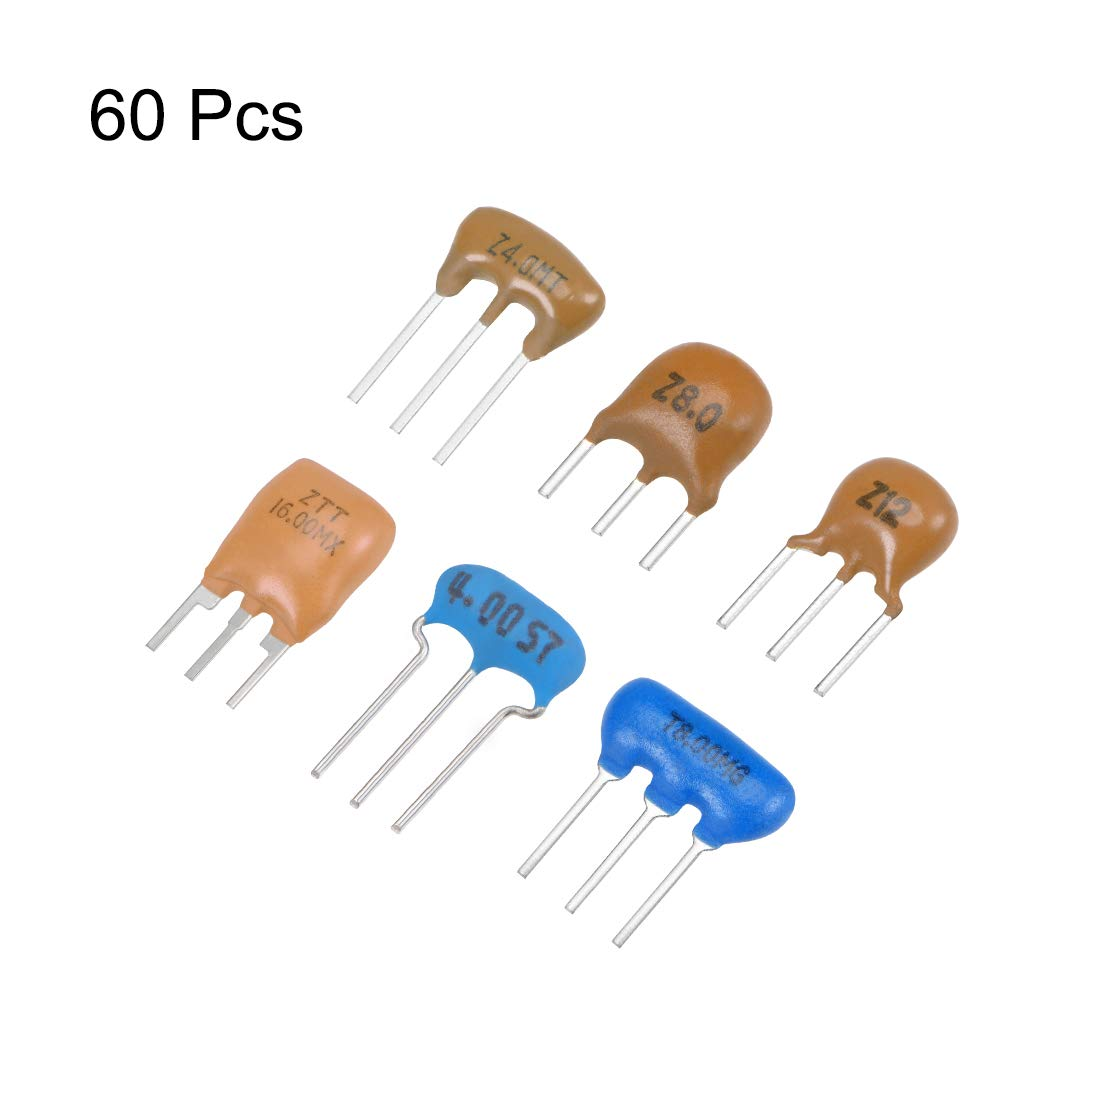 uxcell Ceramic Resonator Oscillator Assortment 4MHz 8MHz 12MHz 16MHz DIP 6in1 60pcs